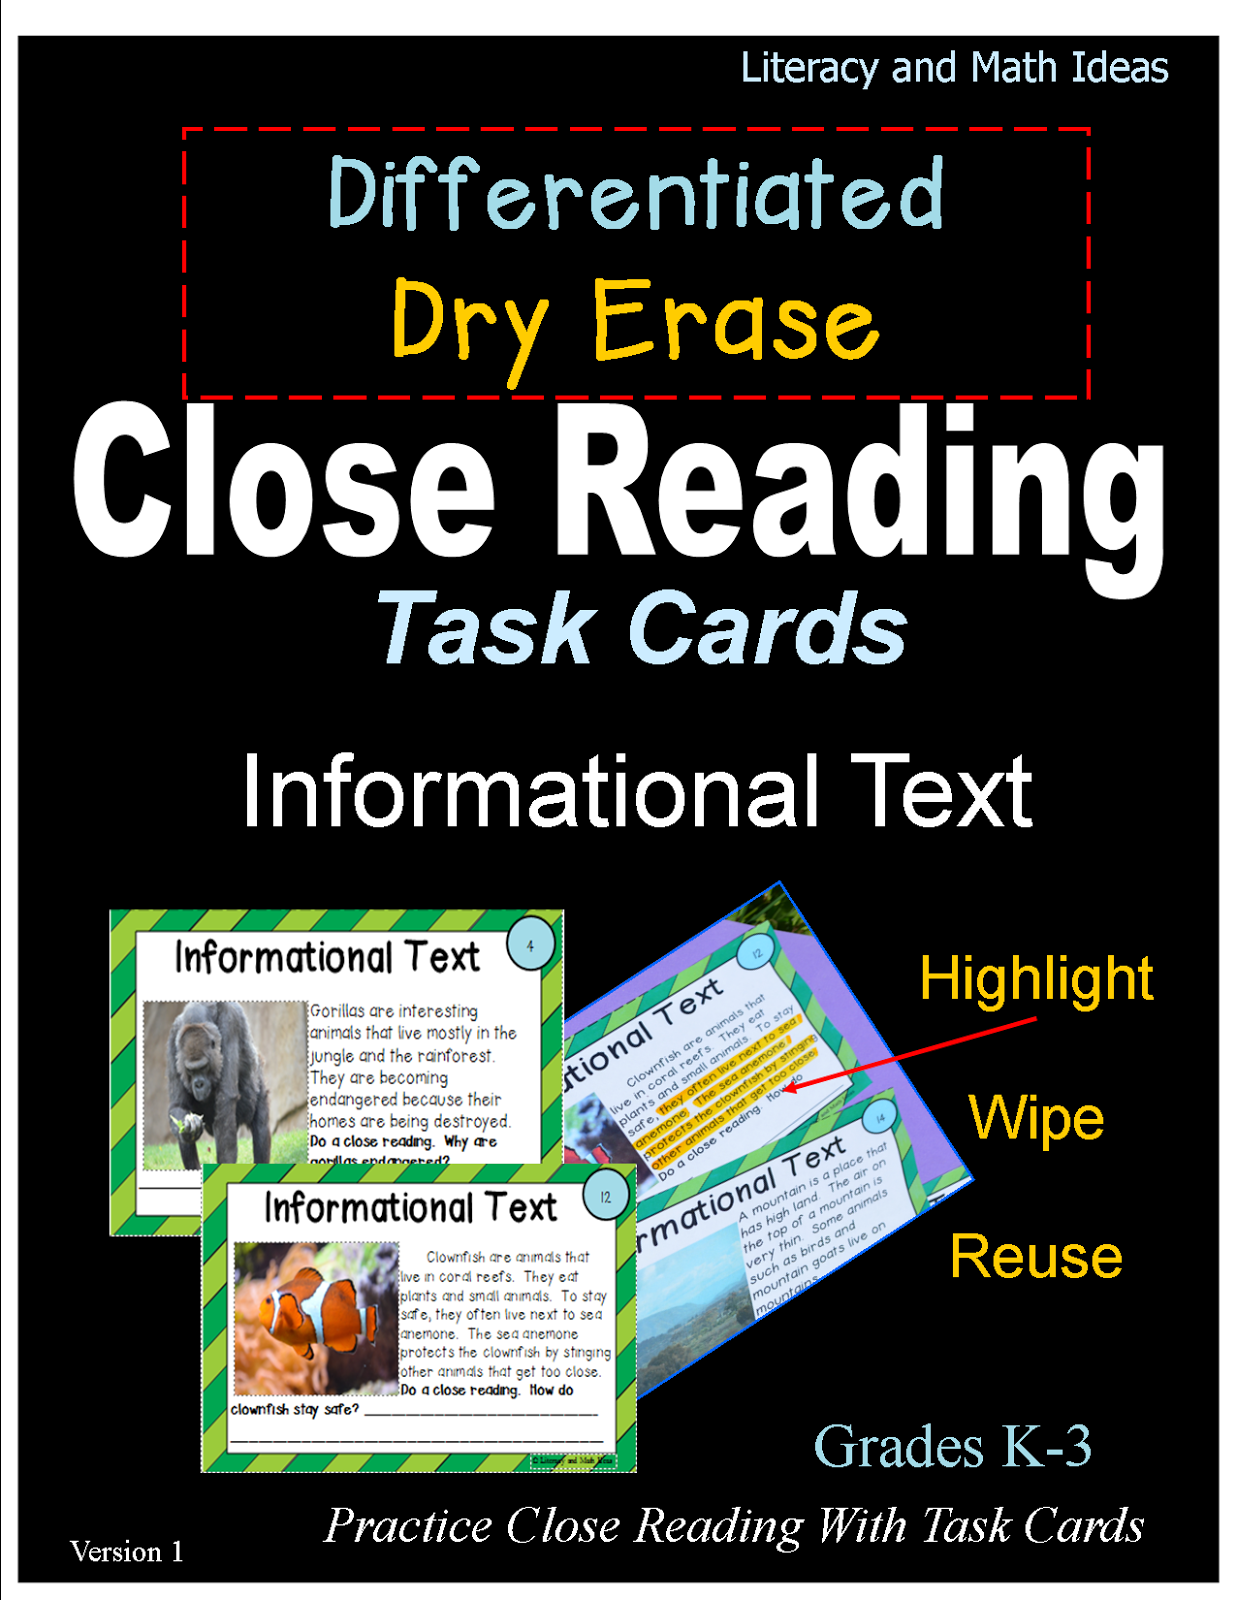 DIfferentiated Dry Erase Close Reading Task Cards For